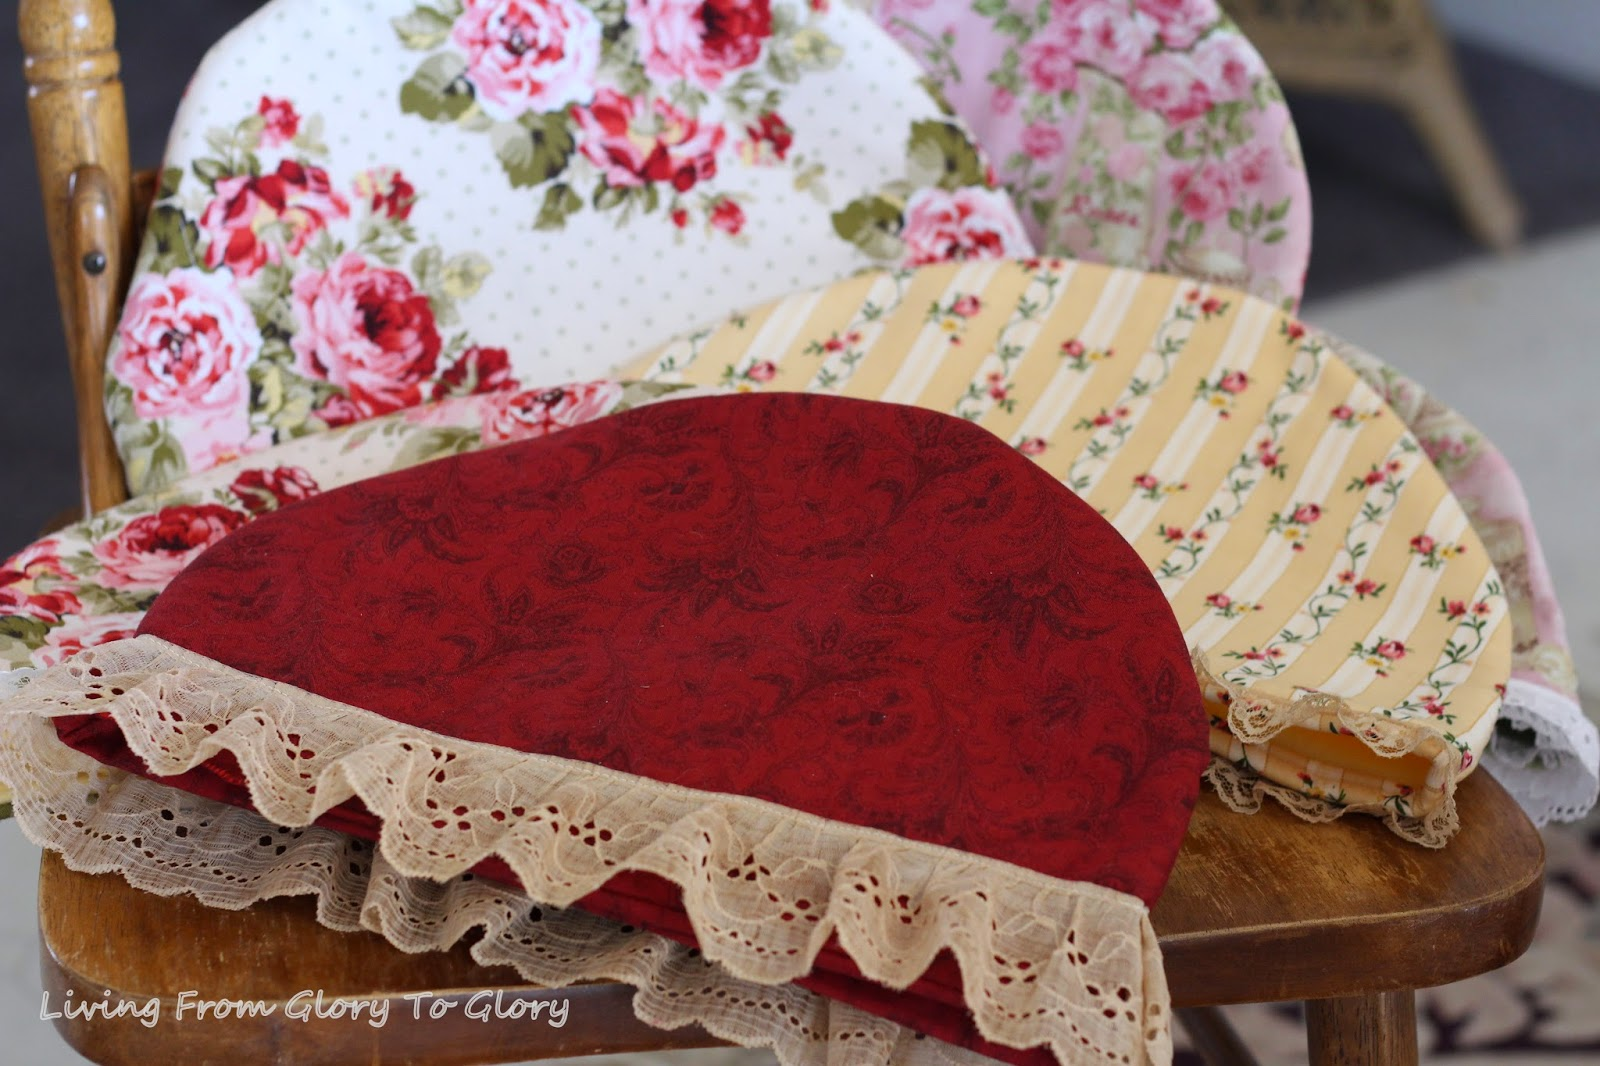 Living From Glory to Glory Blog, Sewing Craft